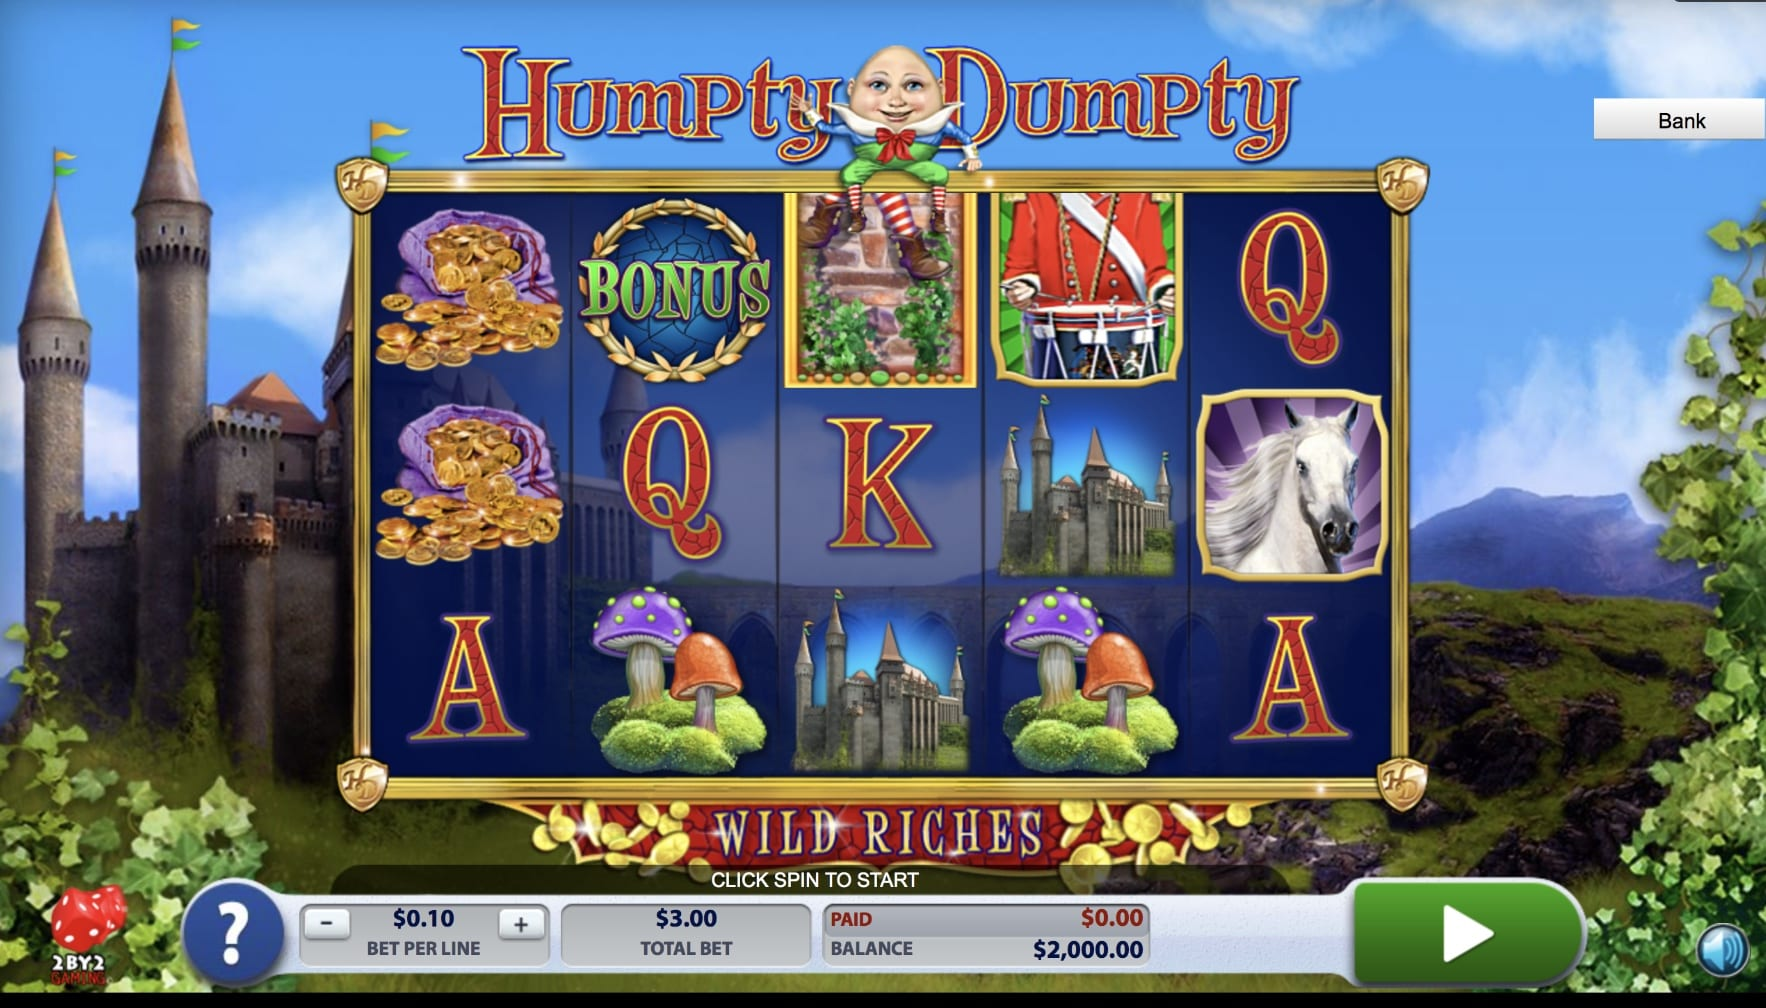 Humpty Dumpty online slots game gameplay